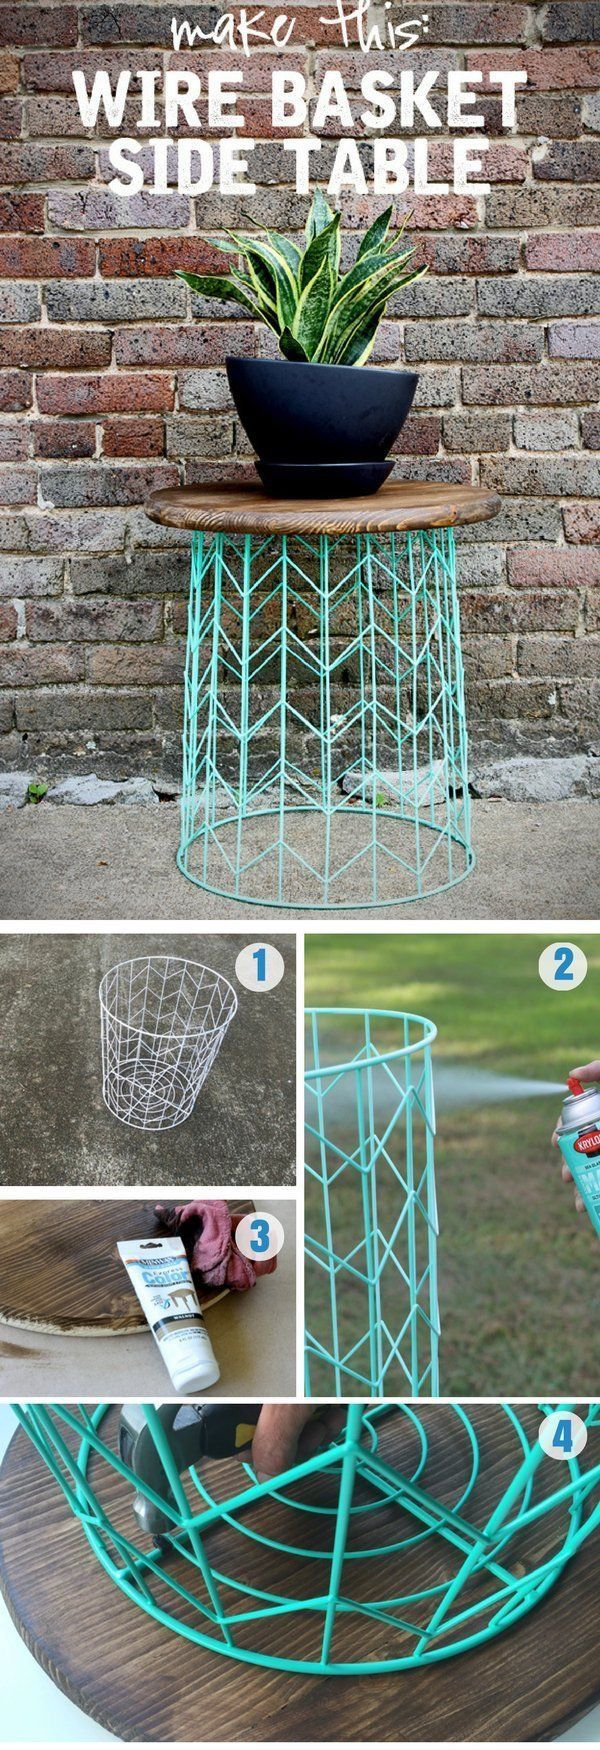 side table from wire basket minute diy idea getting accent make statement your home without breaking the bank this easy but adds fun design element with minimal skills bunk beds